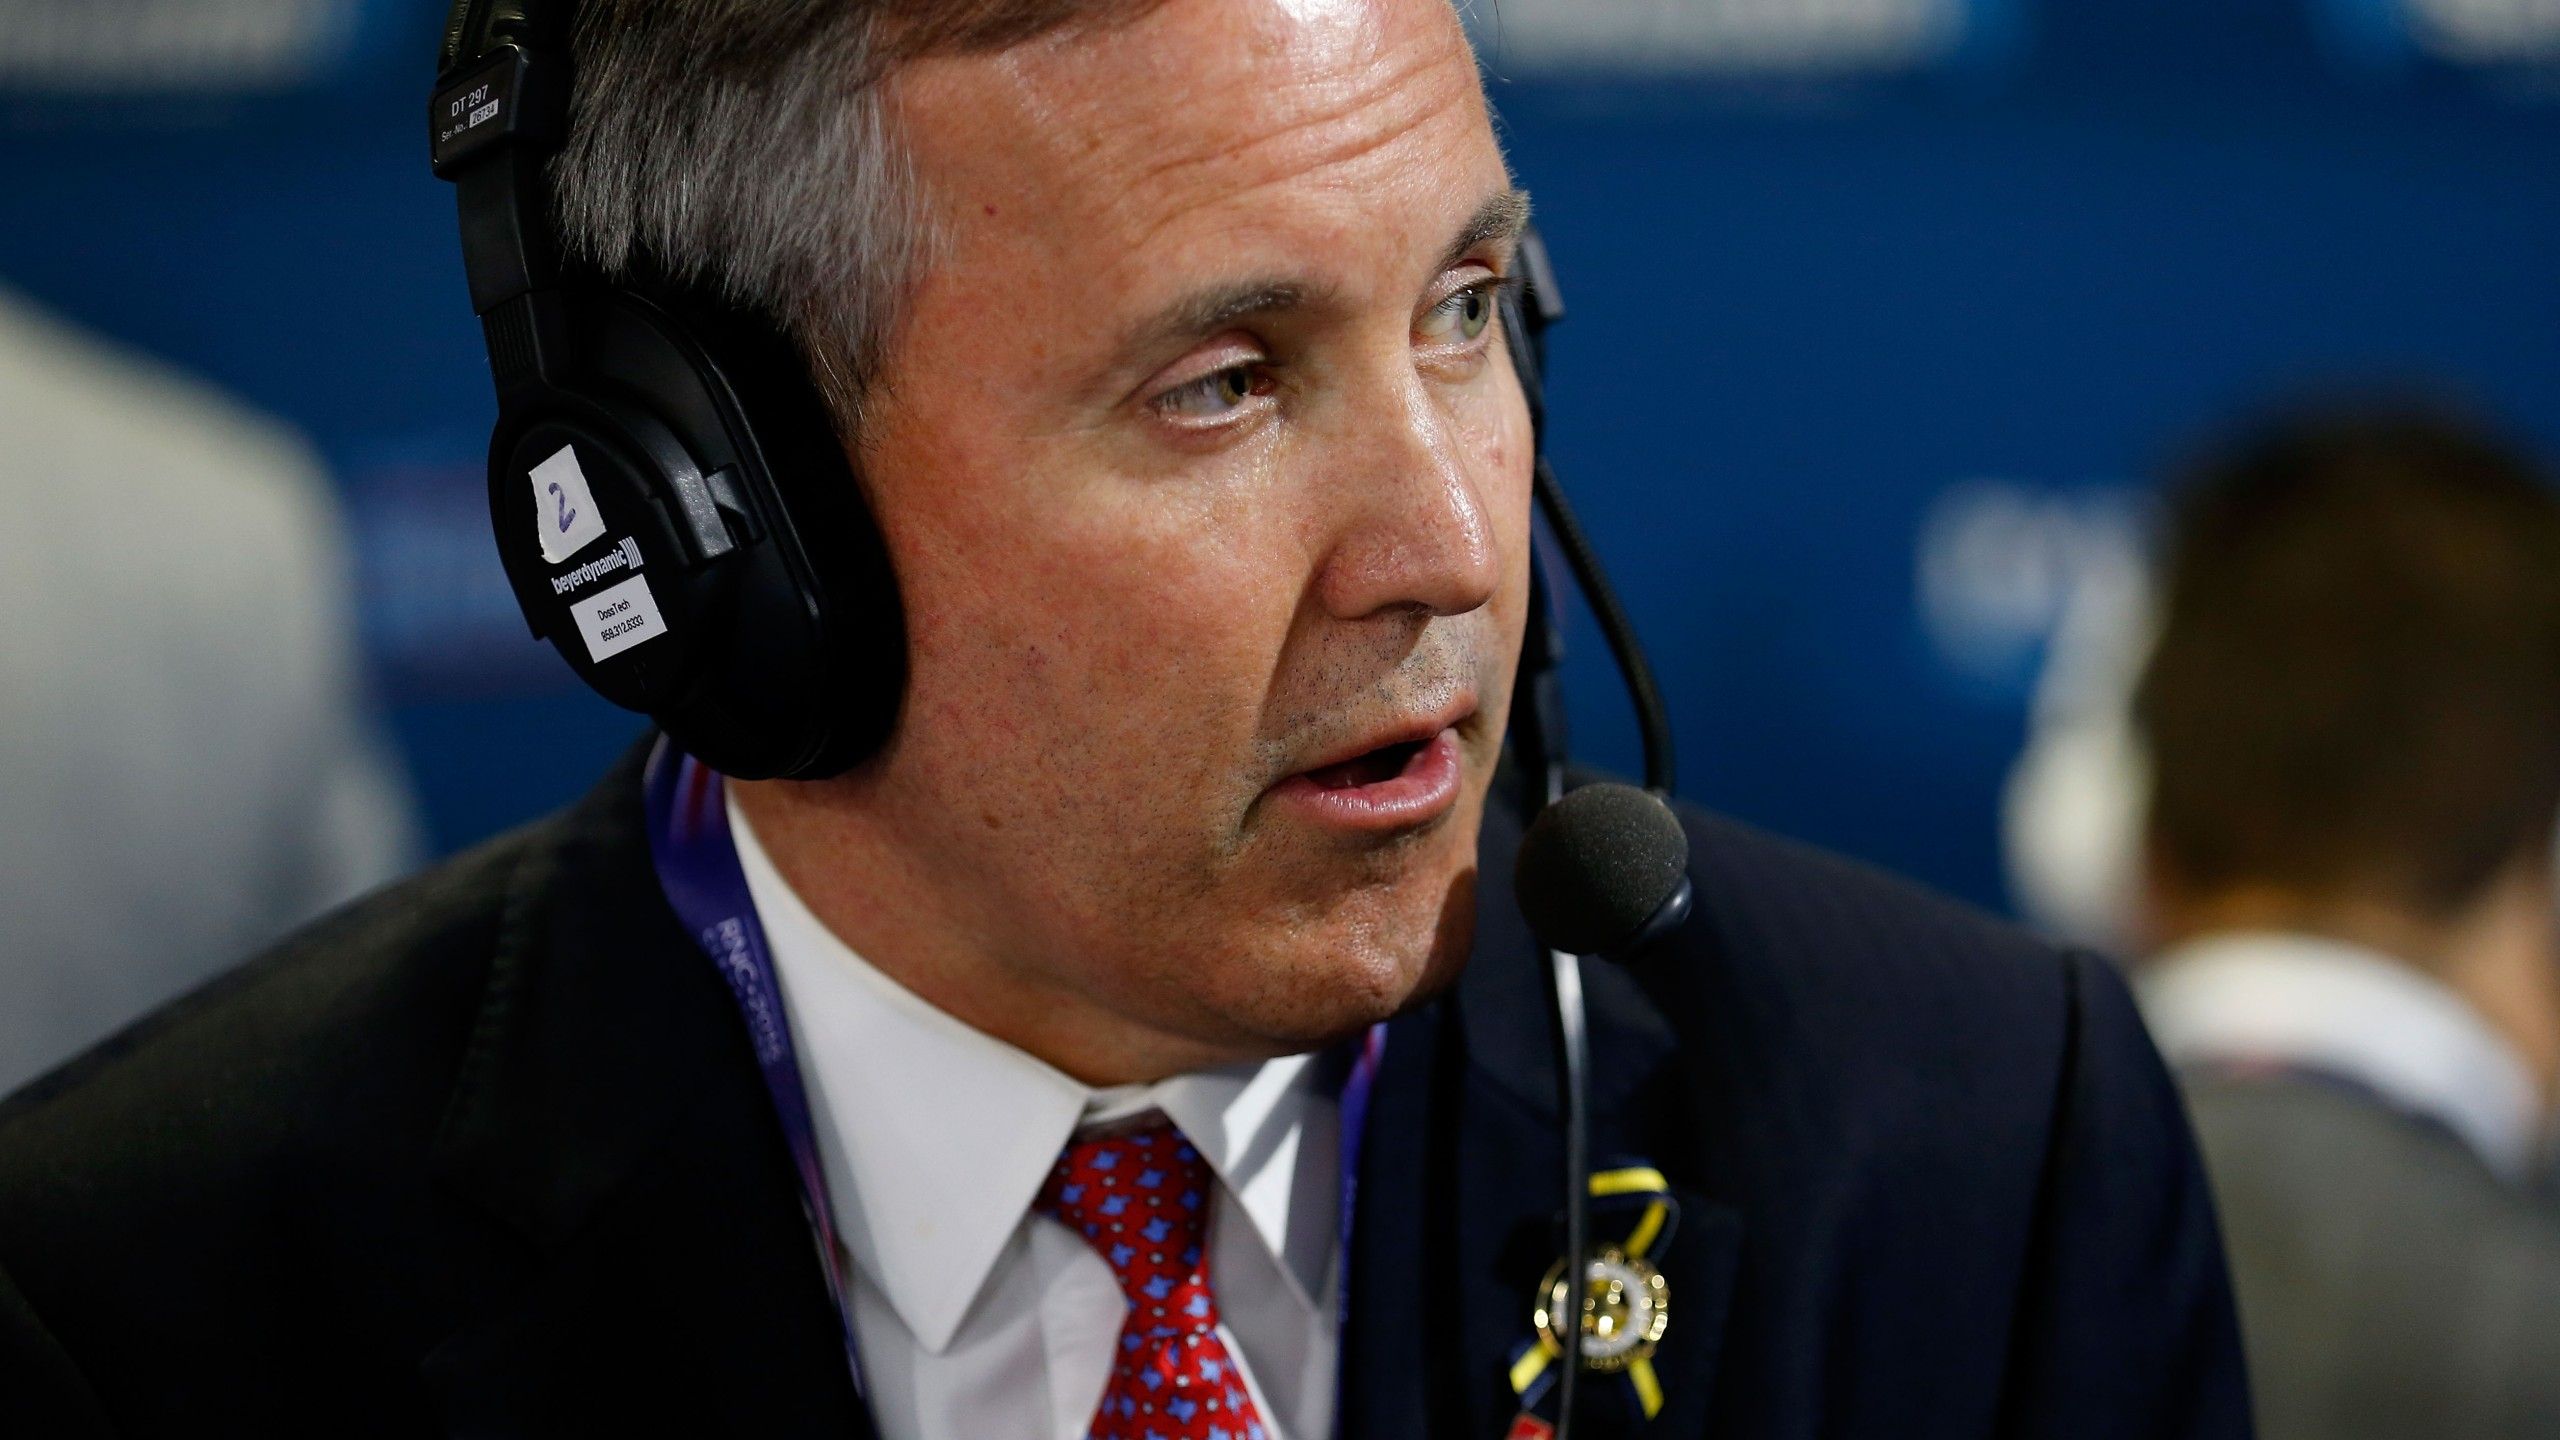 """Texas Attorney General Ken Paxton sits down to talk with Andrew Wilkow on his show """"The Wilkow Majority"""" at Quicken Loans Arena on July 20, 2016, in Cleveland, Ohio. (Credit: Kirk Irwin/Getty Images for SiriusXM)"""